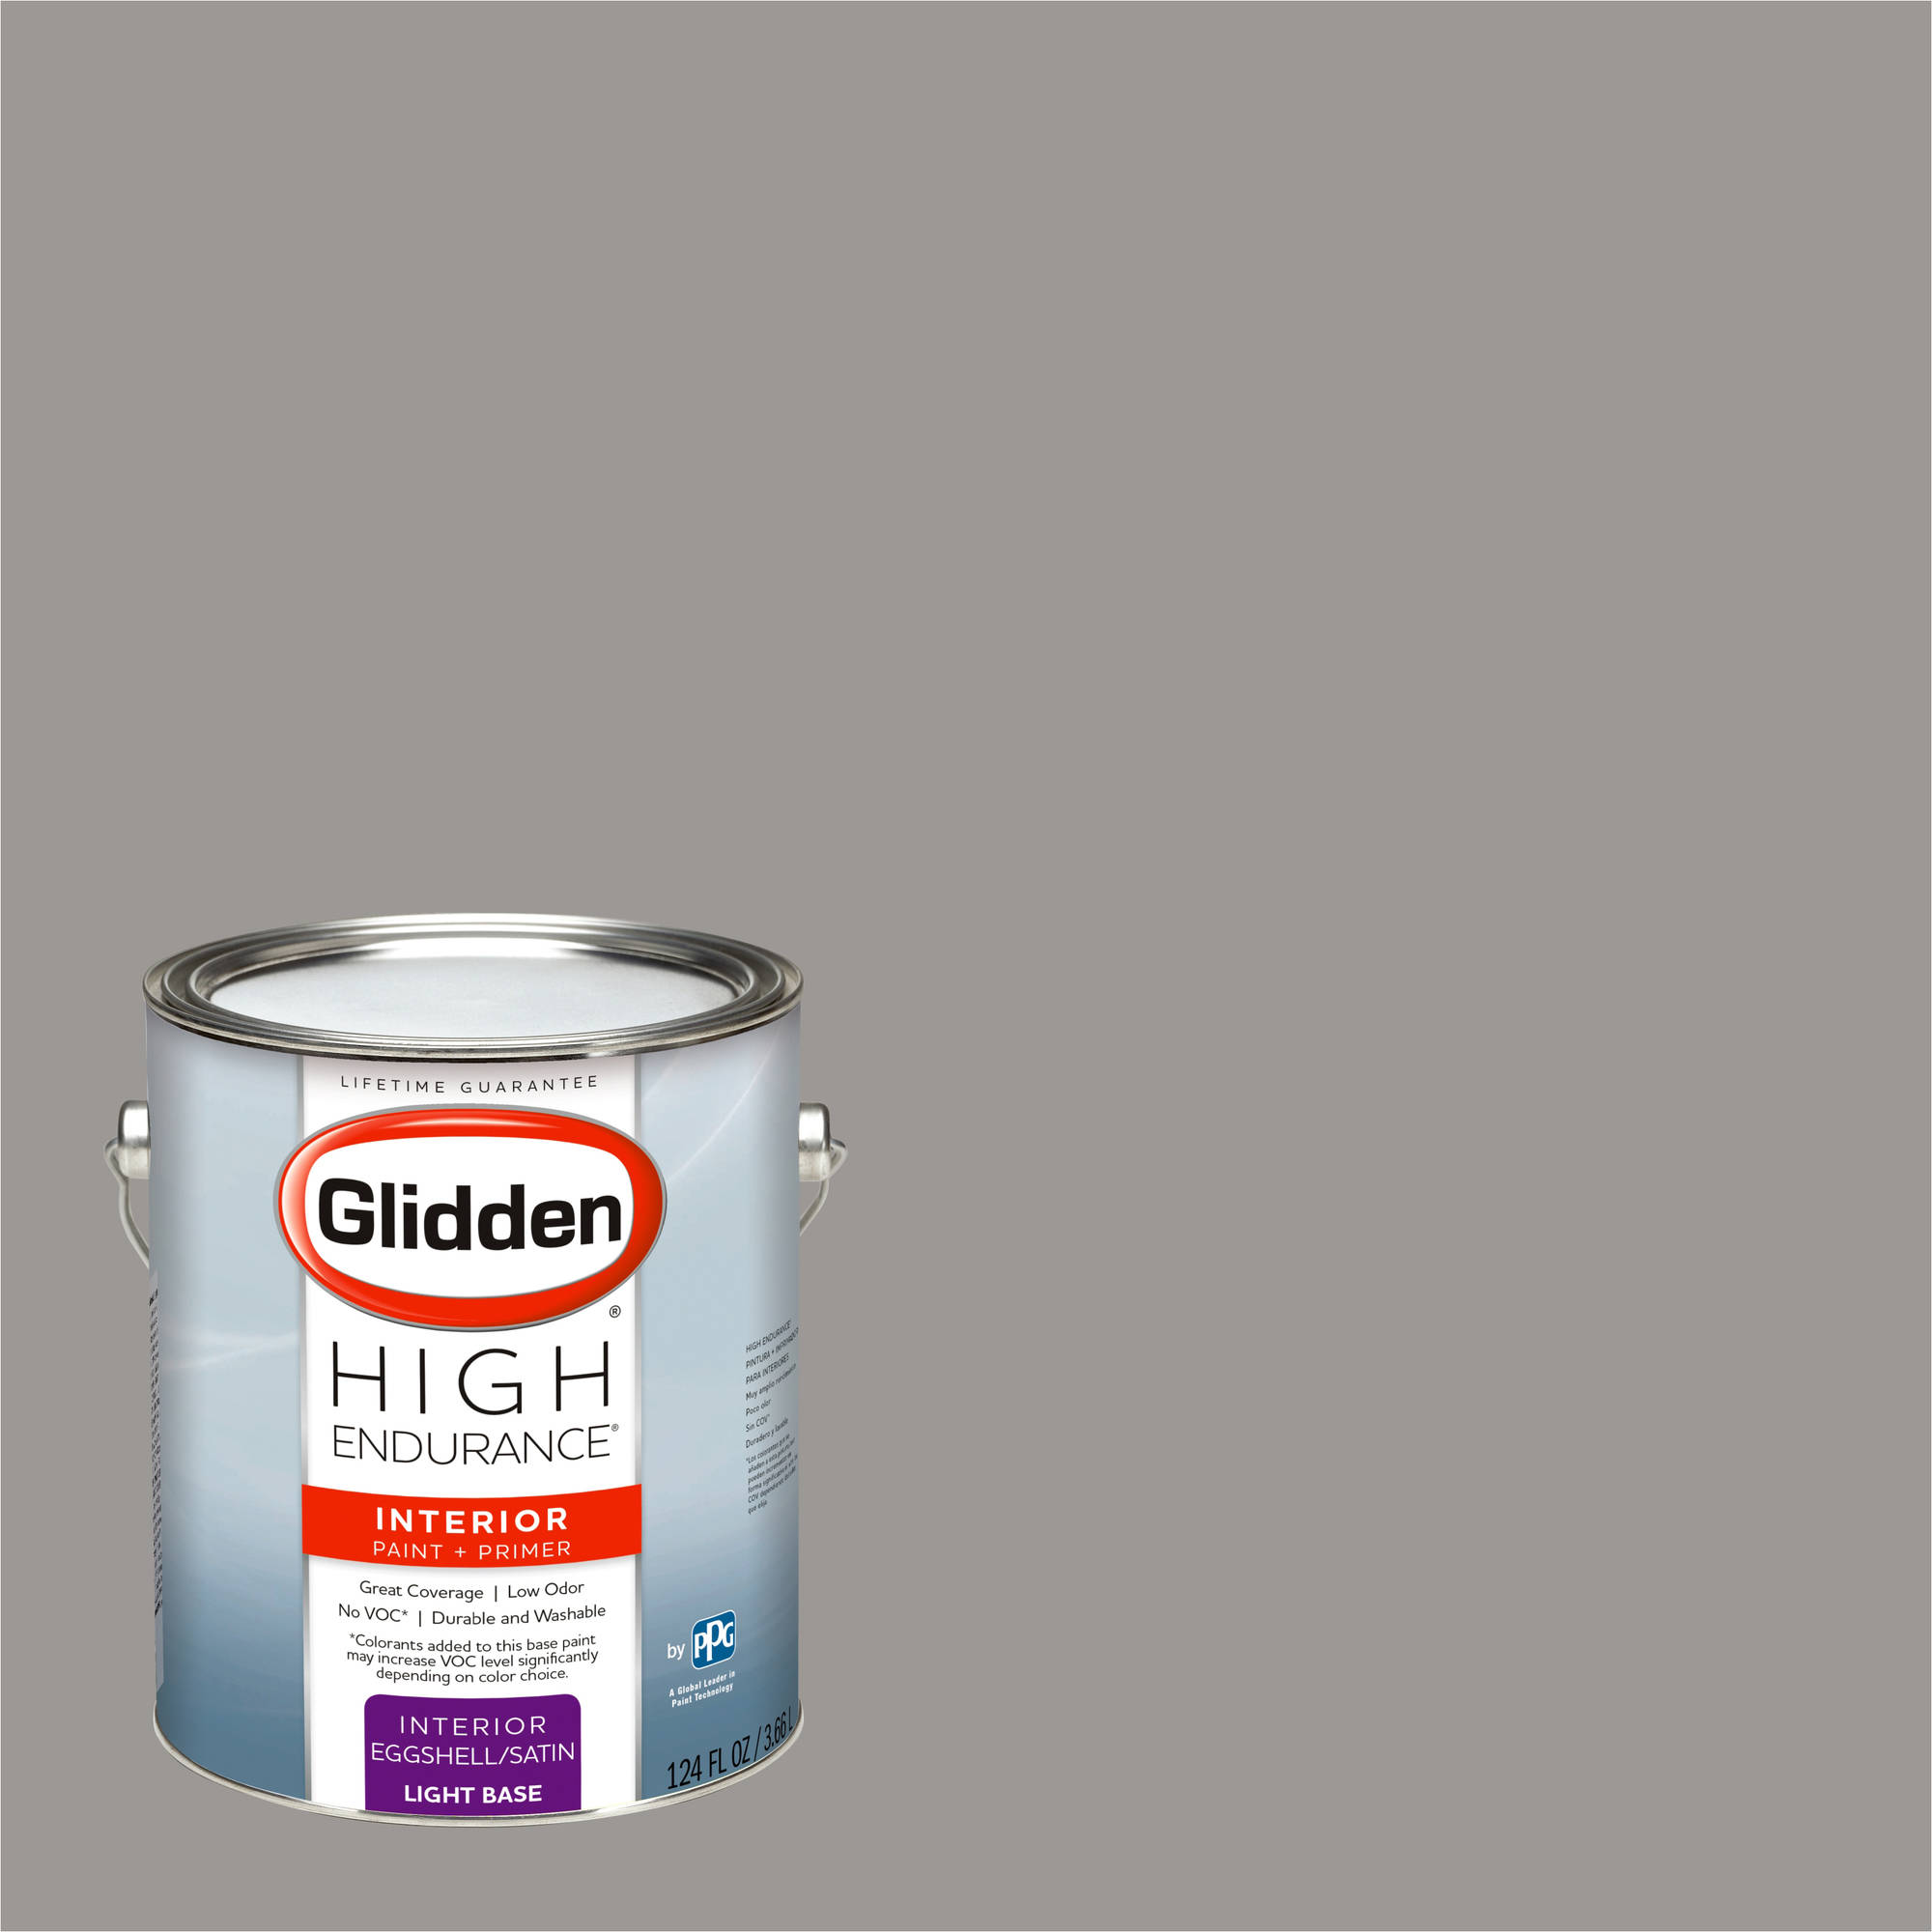 Glidden High Endurance, Interior Paint and Primer, Stone Grey, # 30YY 31/024